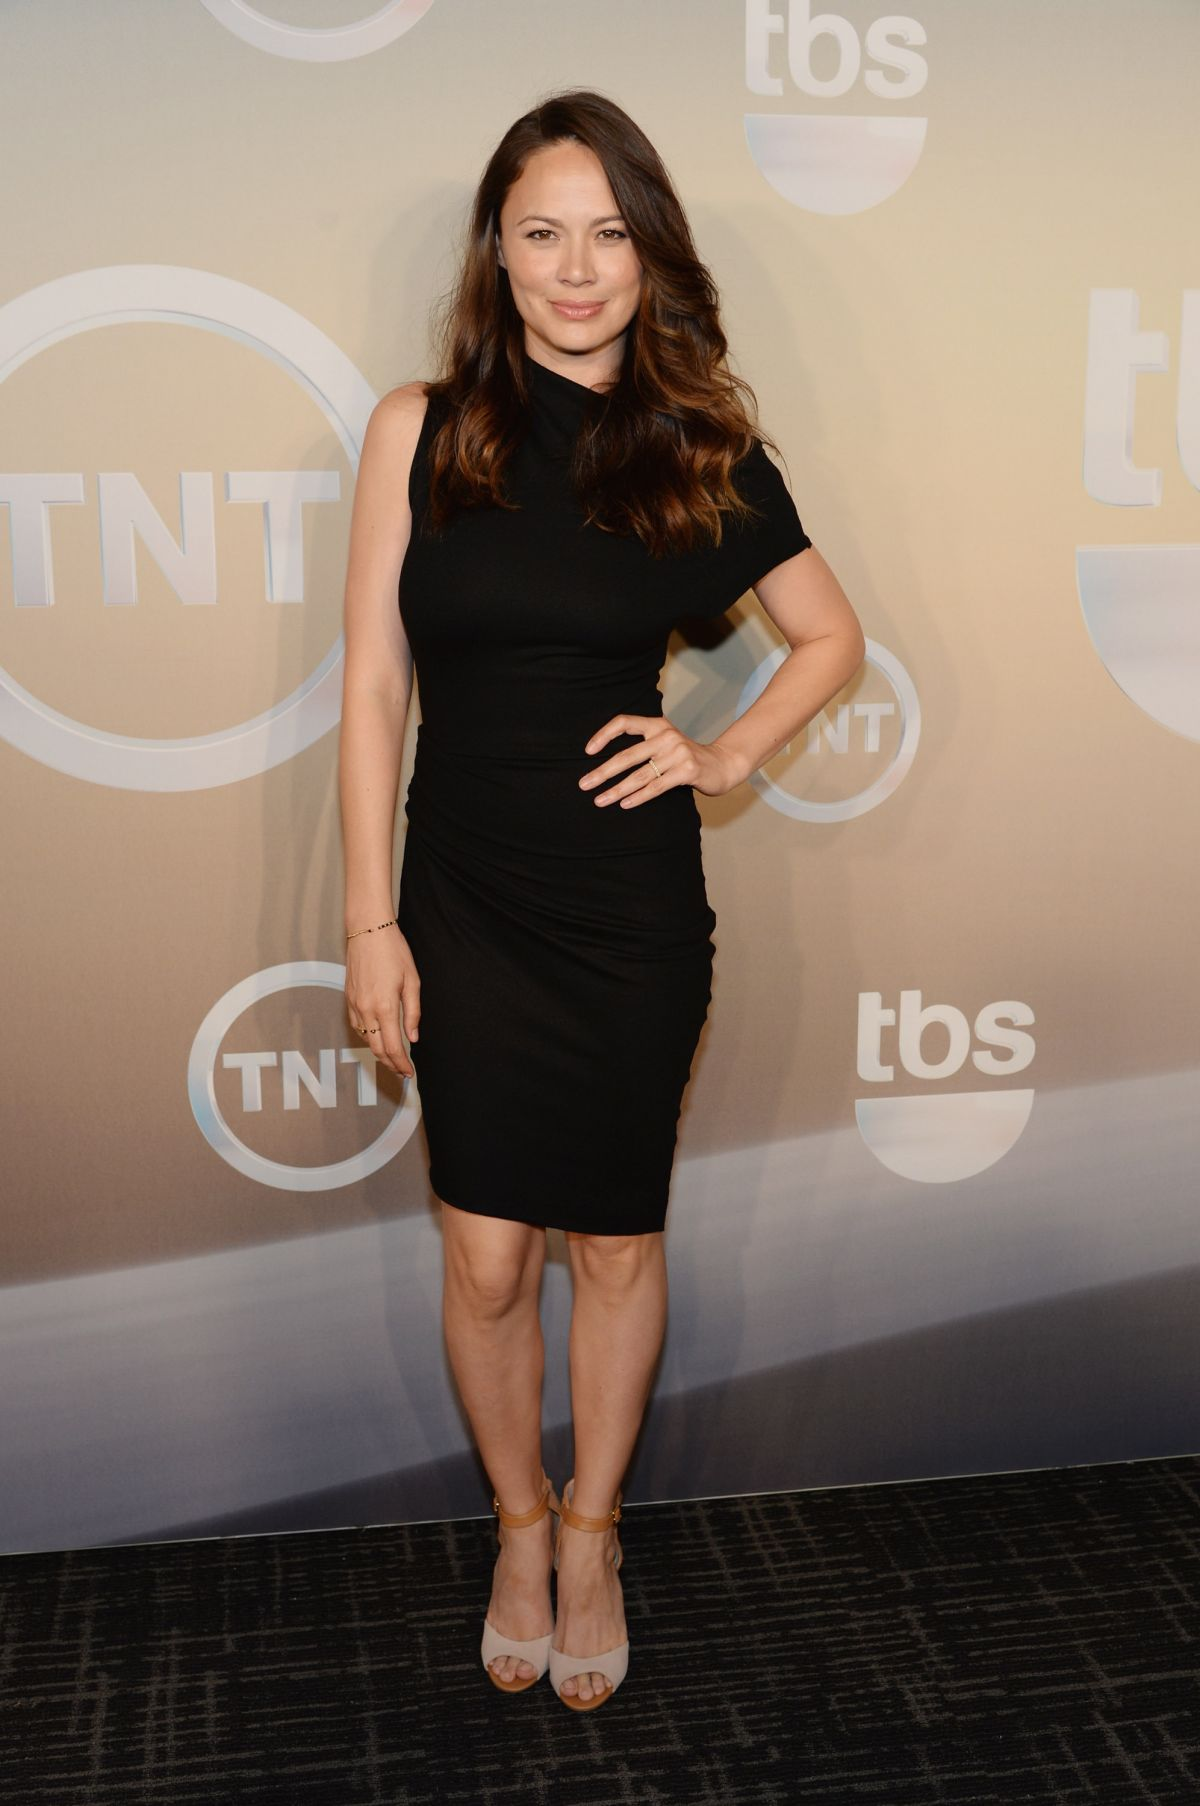 MOON BLOODGOOD at TBS/TNT Upfront 2014 in New York